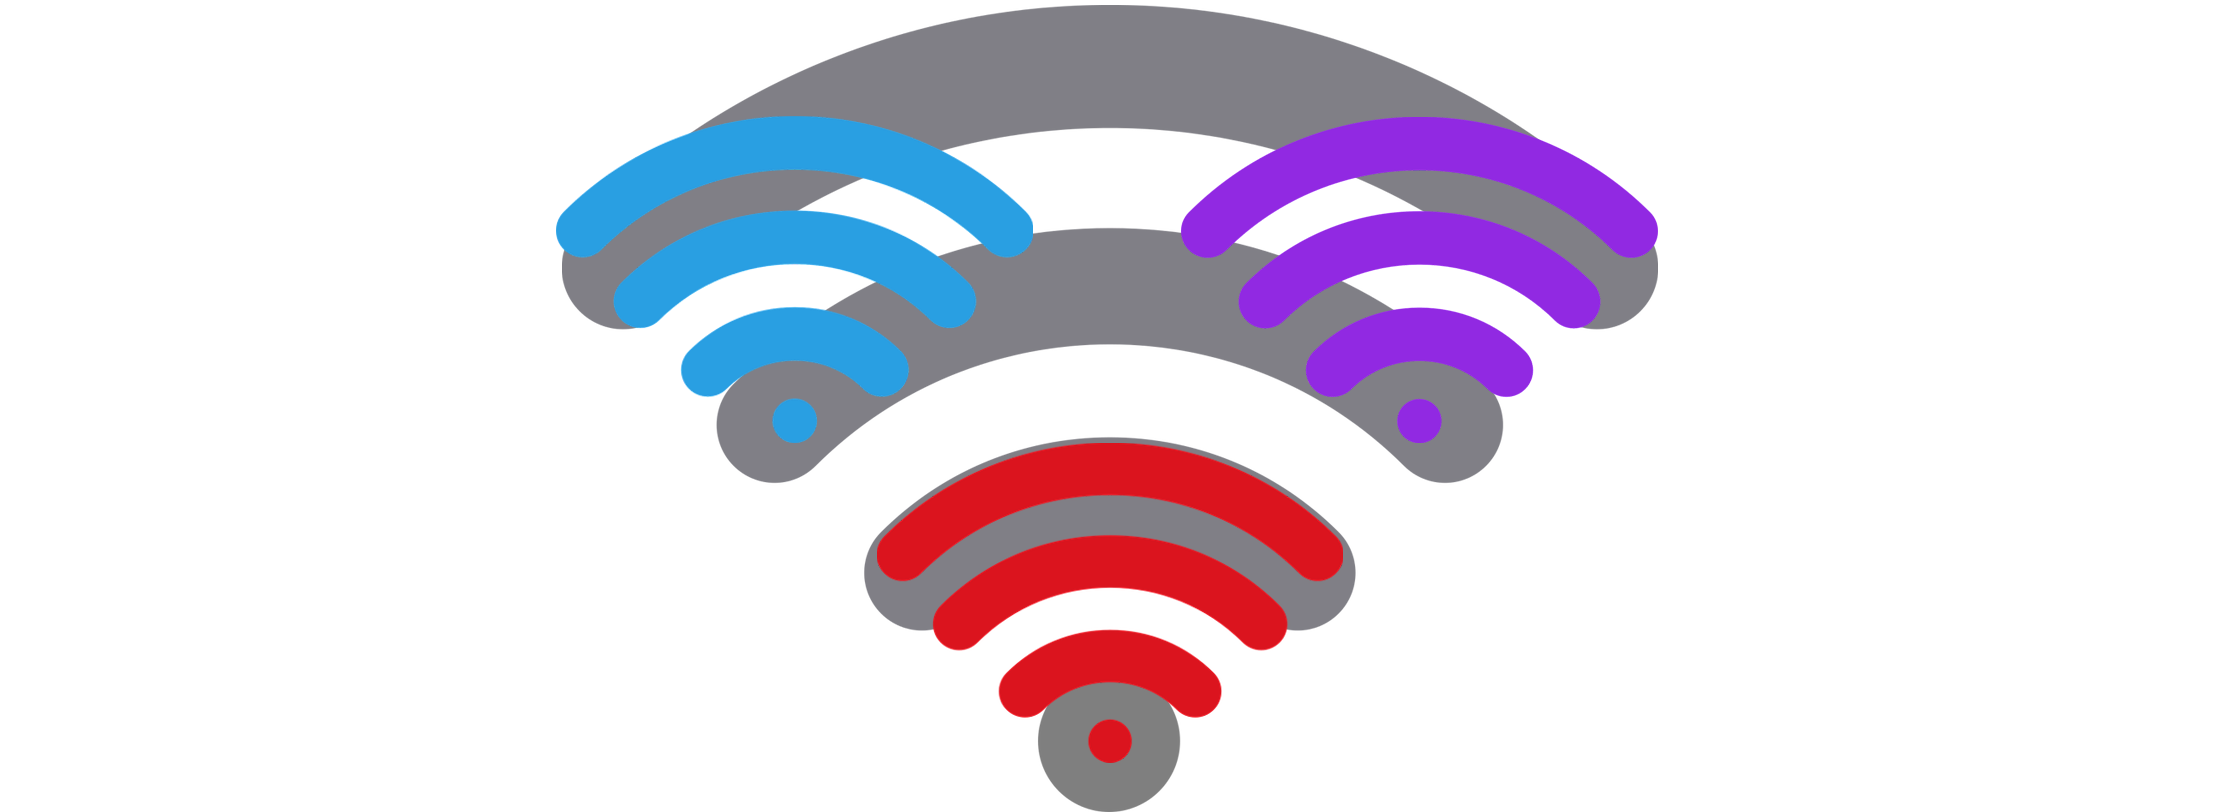 Using multiple rates and multiple channels to improve wireless performance